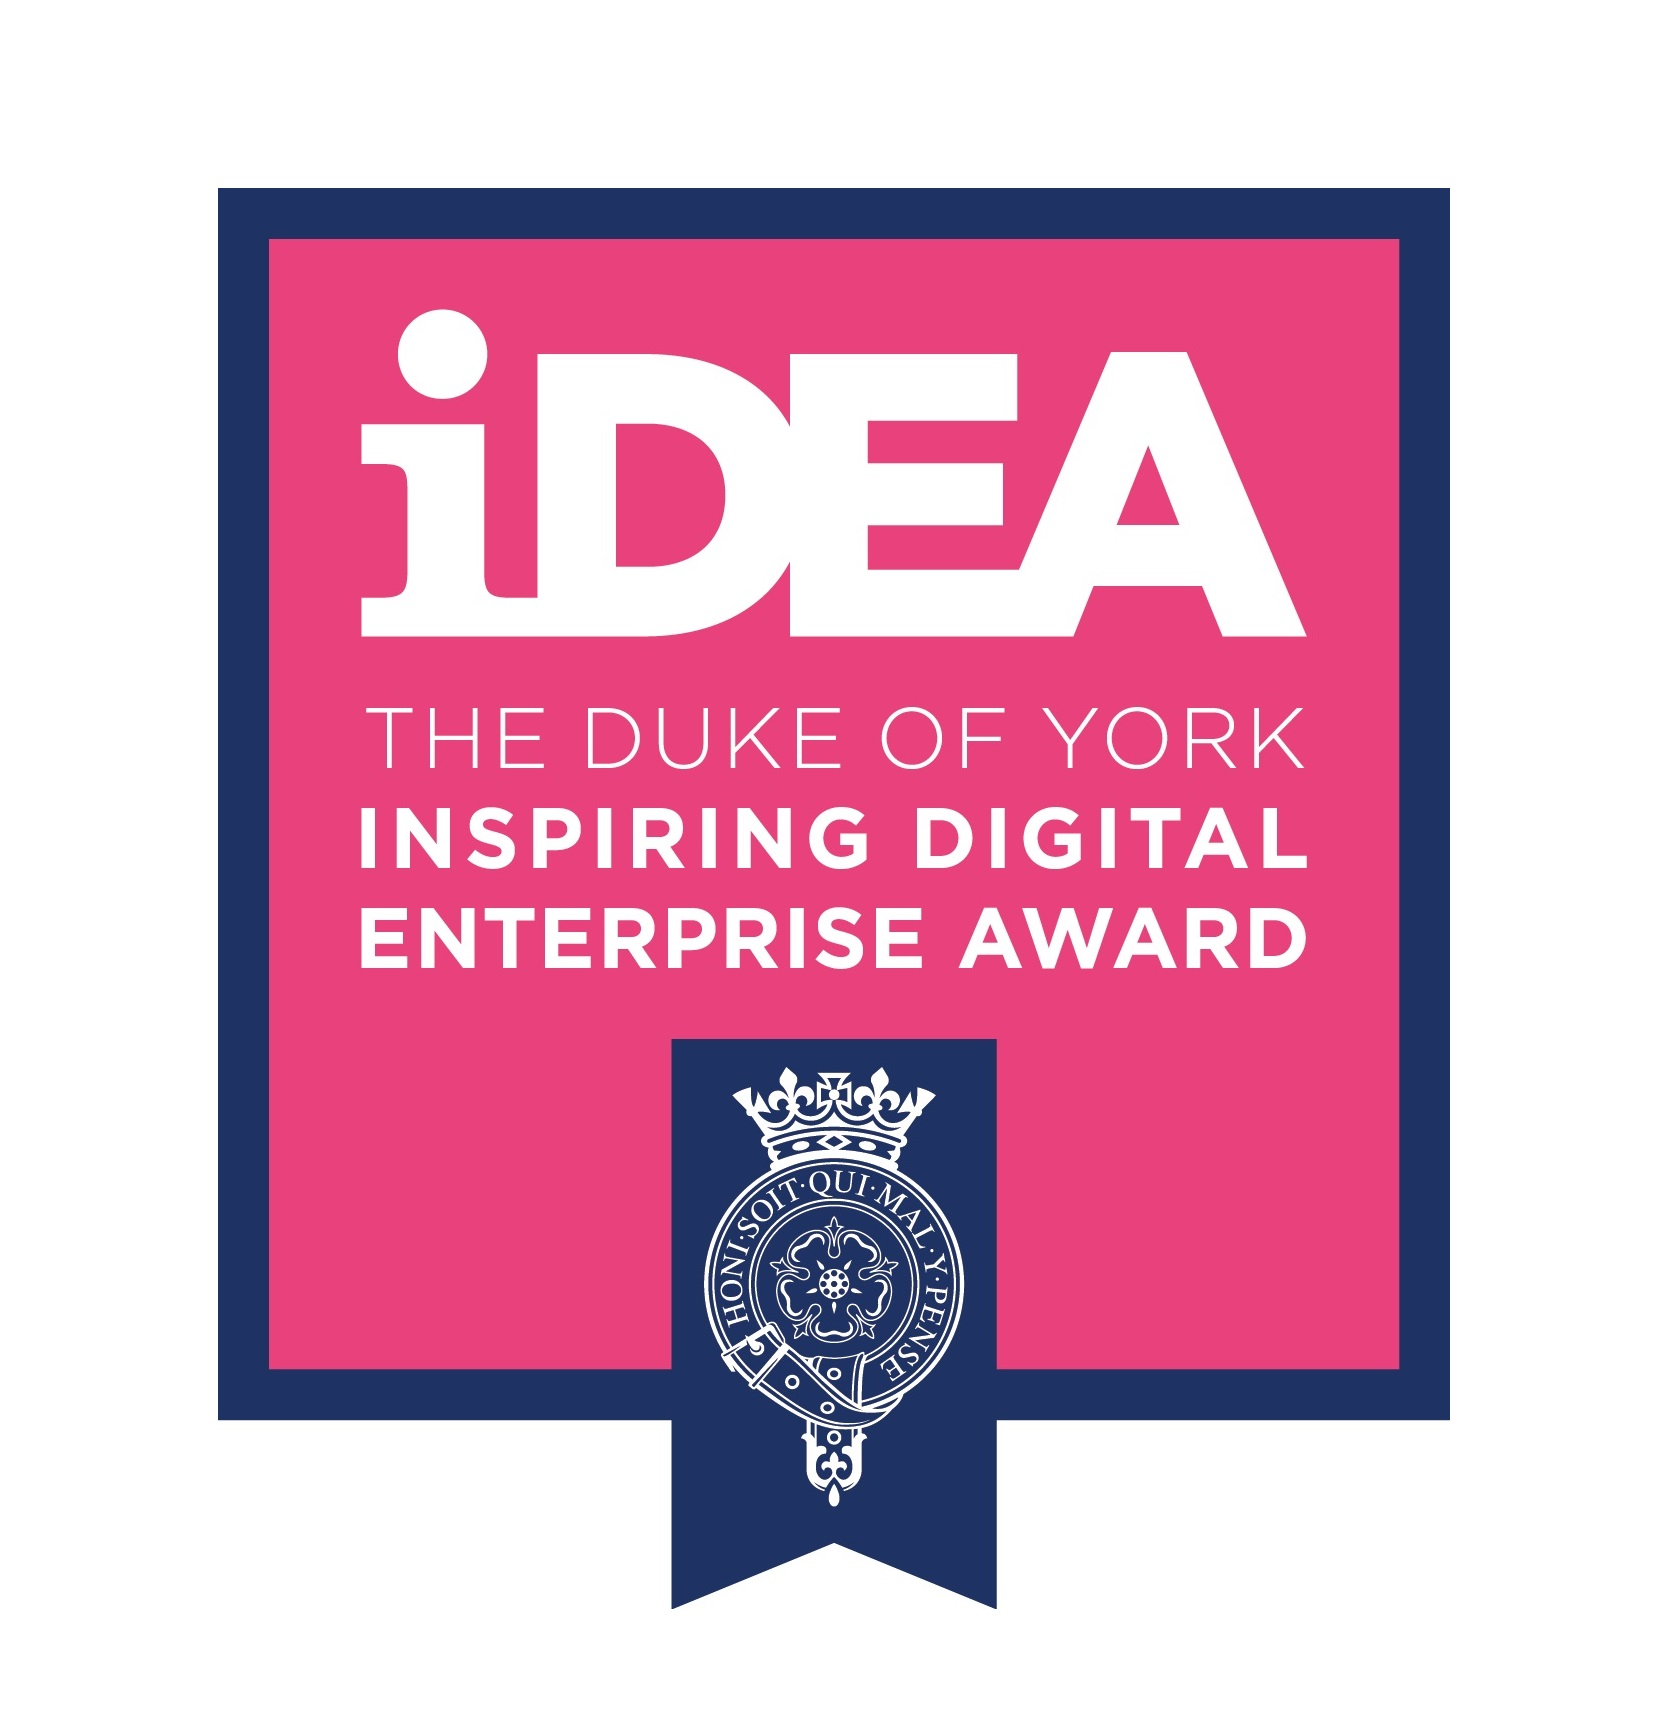 The Duke of York Inspiring Digital Enterprise Award (iDEA) logo